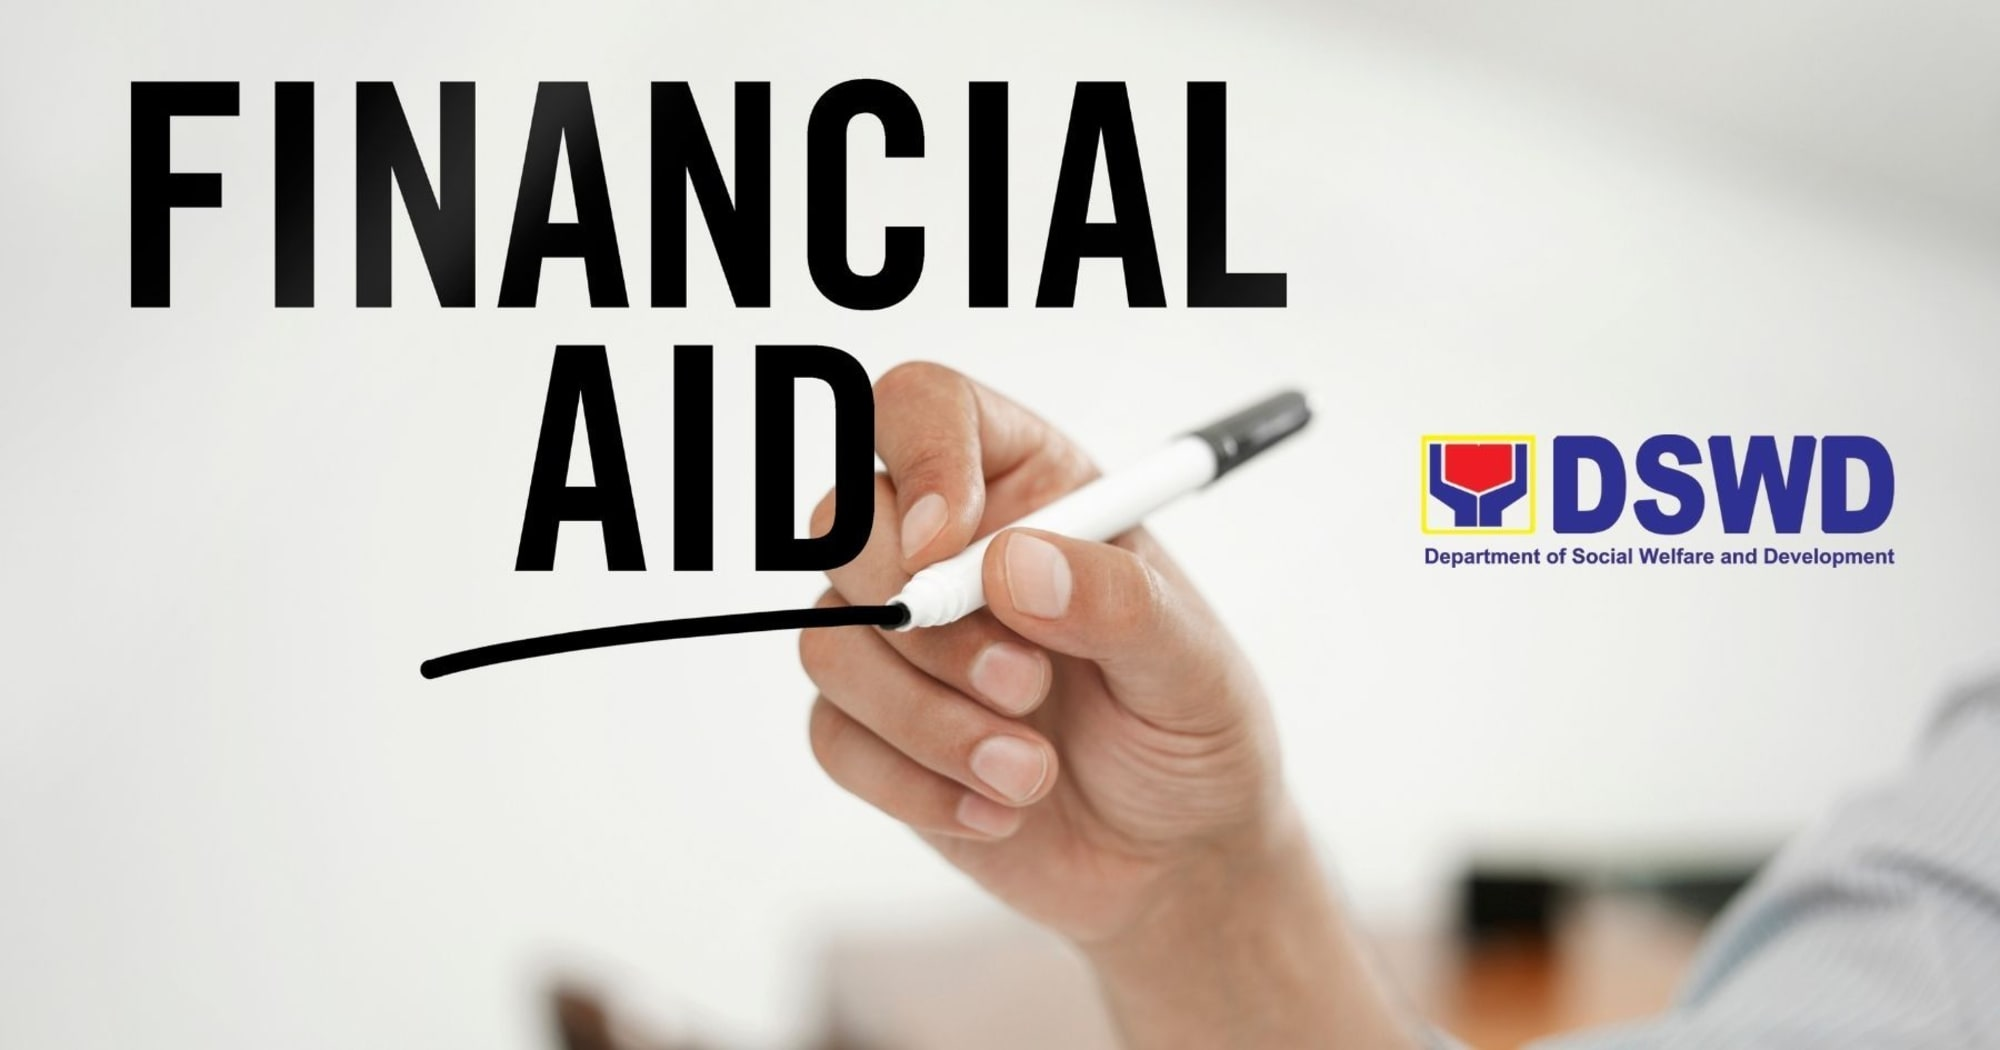 The DSWD will aid the LGUs in handling Financial aid